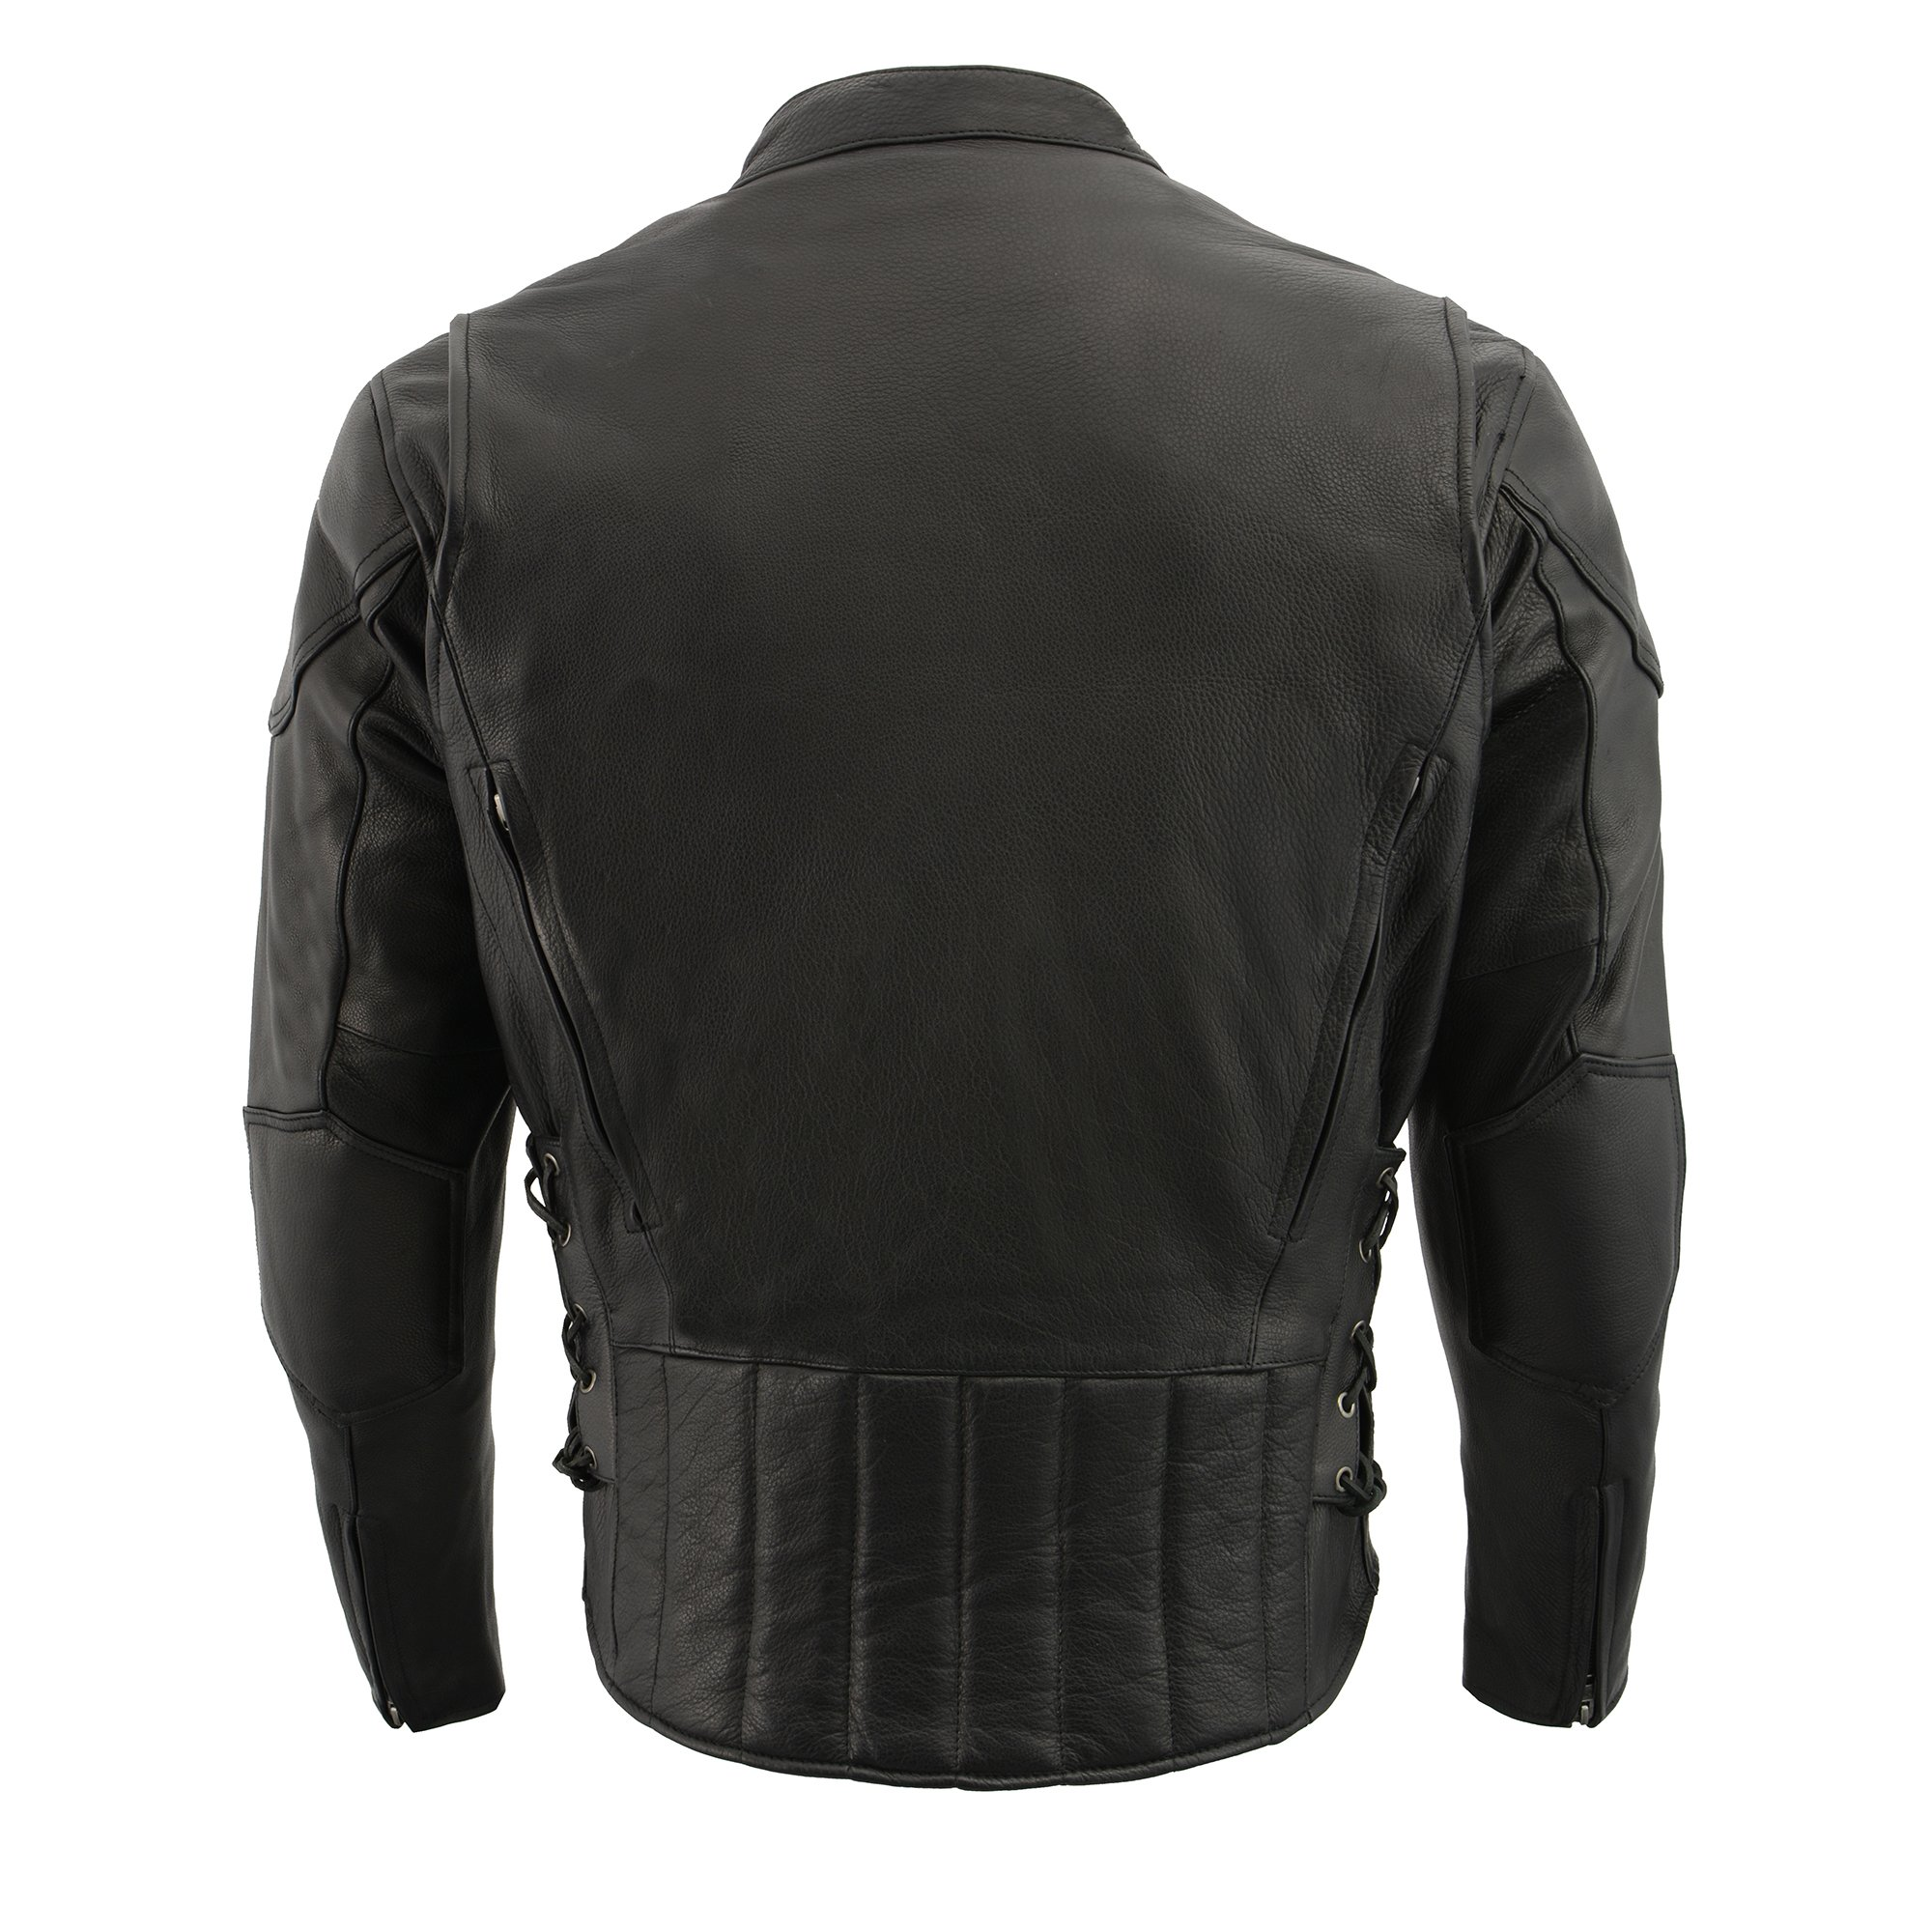 Milwaukee Leather Men's Side Lace Vented Scooter Jacket (Black, 5X-LargeTall) by Milwaukee Leather (Image #15)